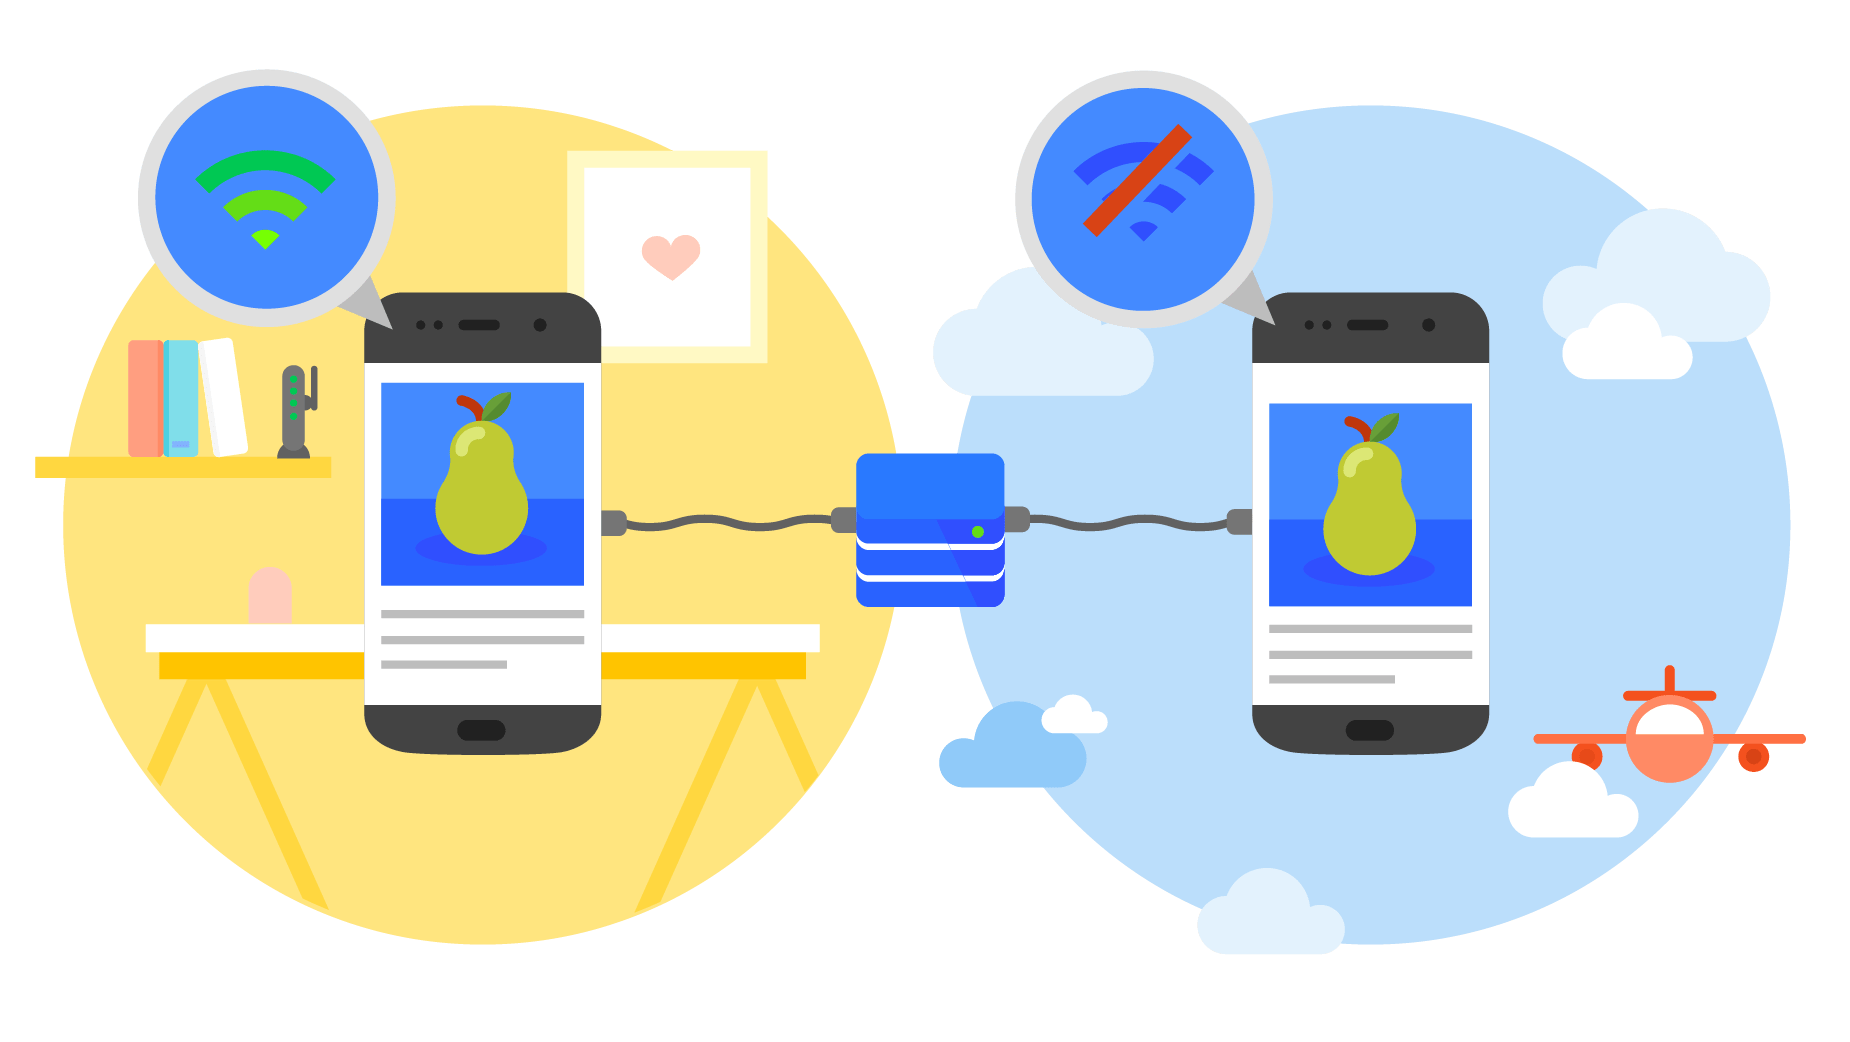 Can PWA (Progressive Web Apps) sample of 2018 make up a worthy competition to native applications?